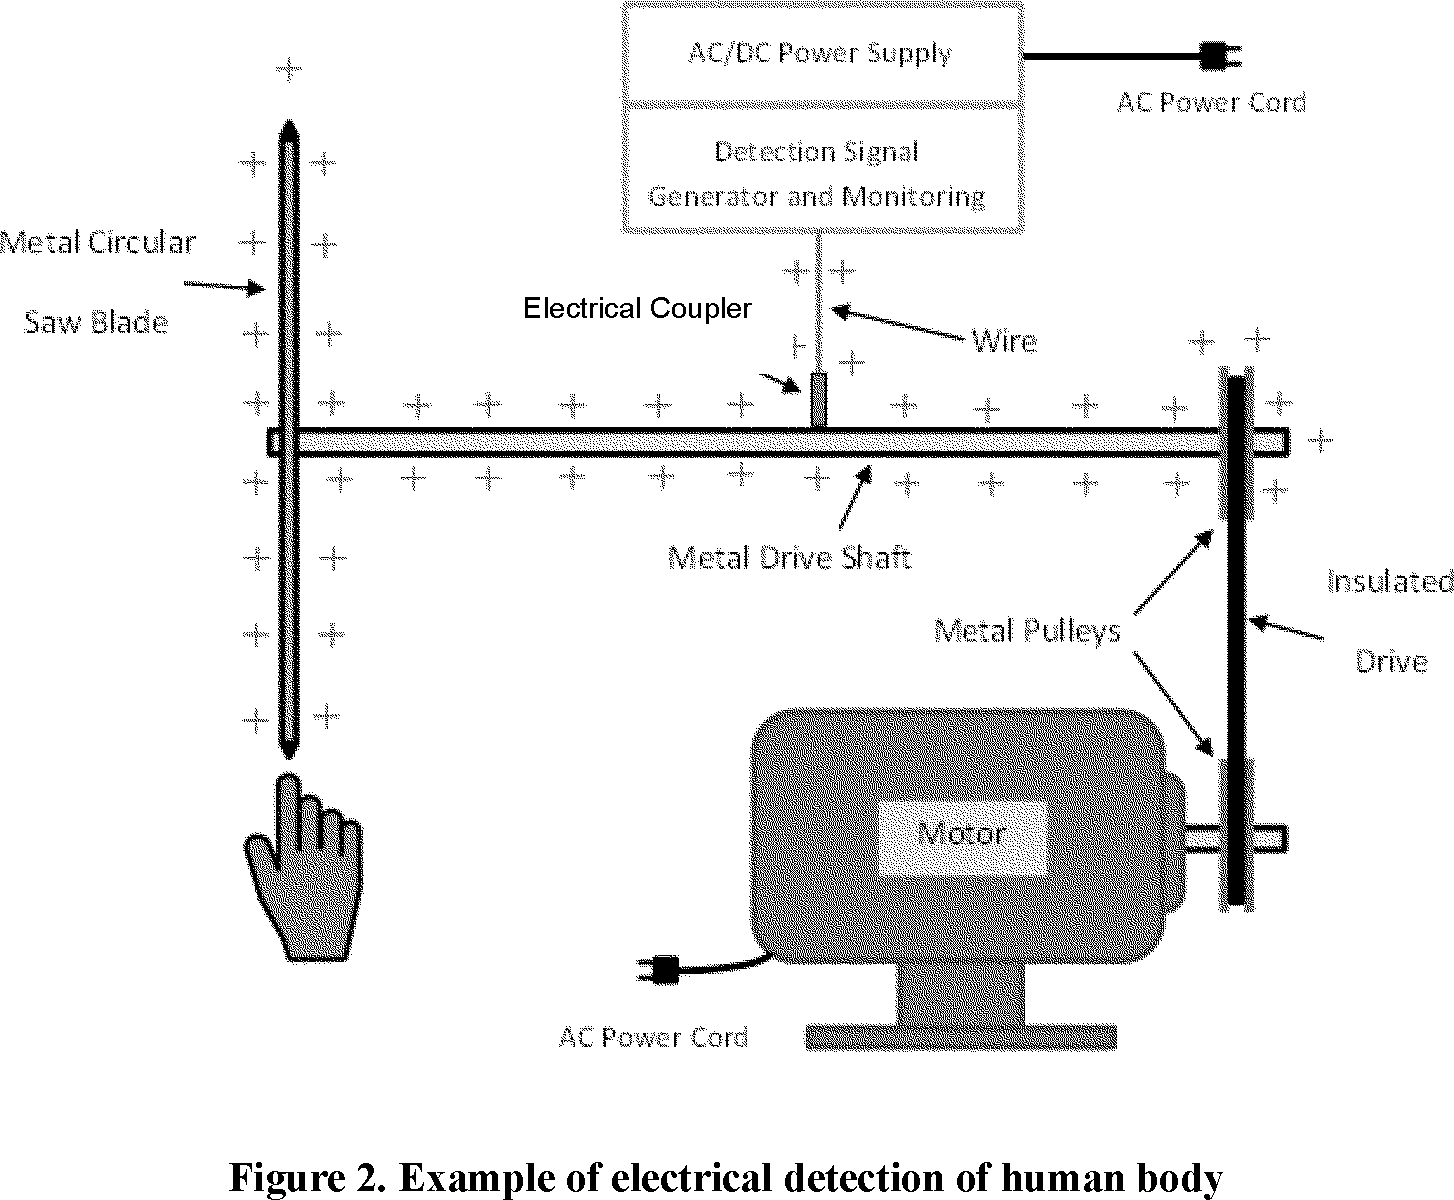 medium resolution of  contact with the saw blade and the monitoring circuit senses the change in the signal if the change is beyond a certain limit the monitoring circuit